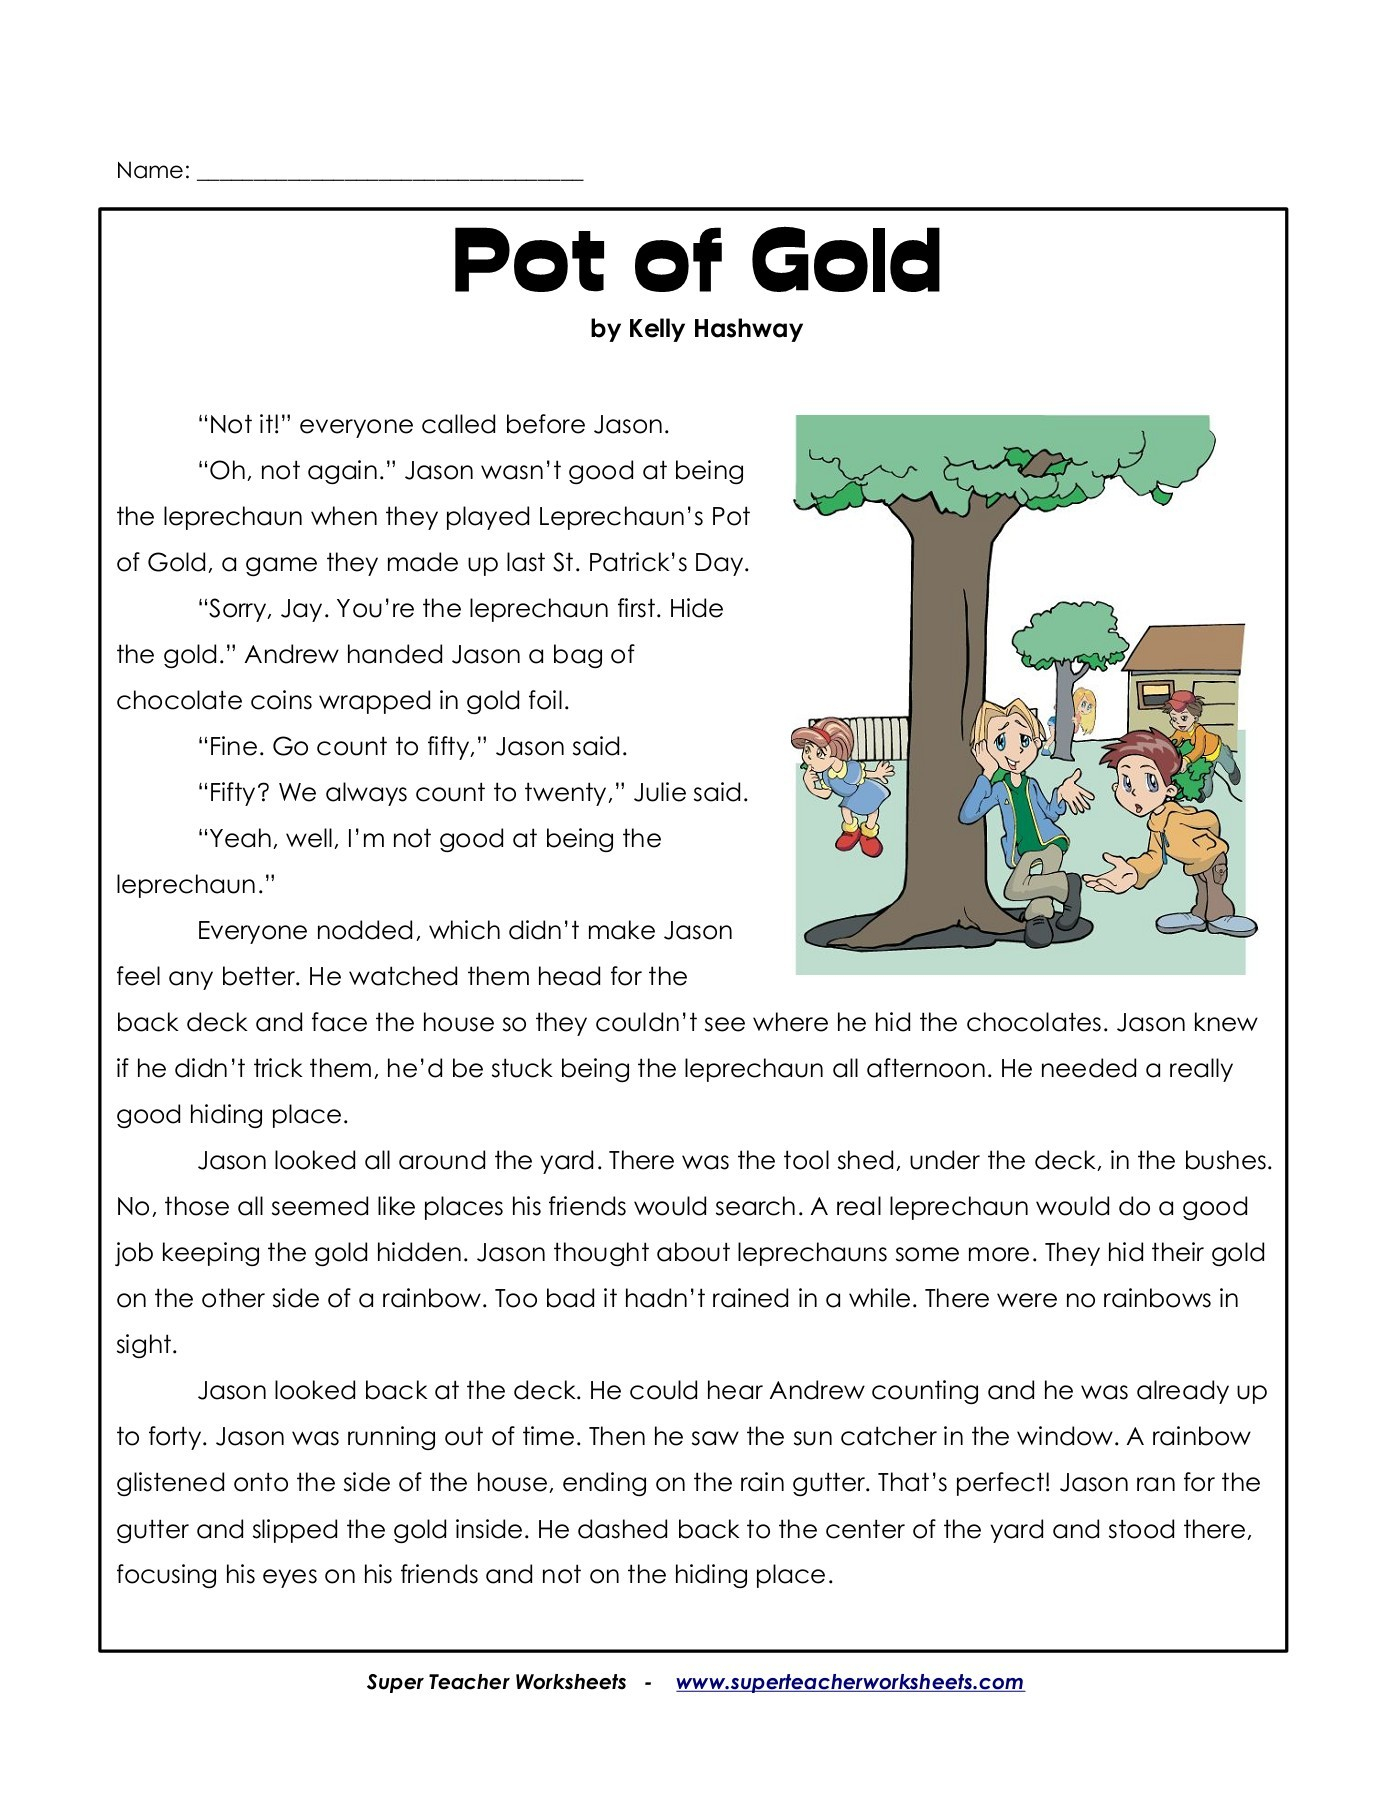 Name: Pot Of Gold Pages 1 - 8 - Flip Pdf Download | Fliphtml5